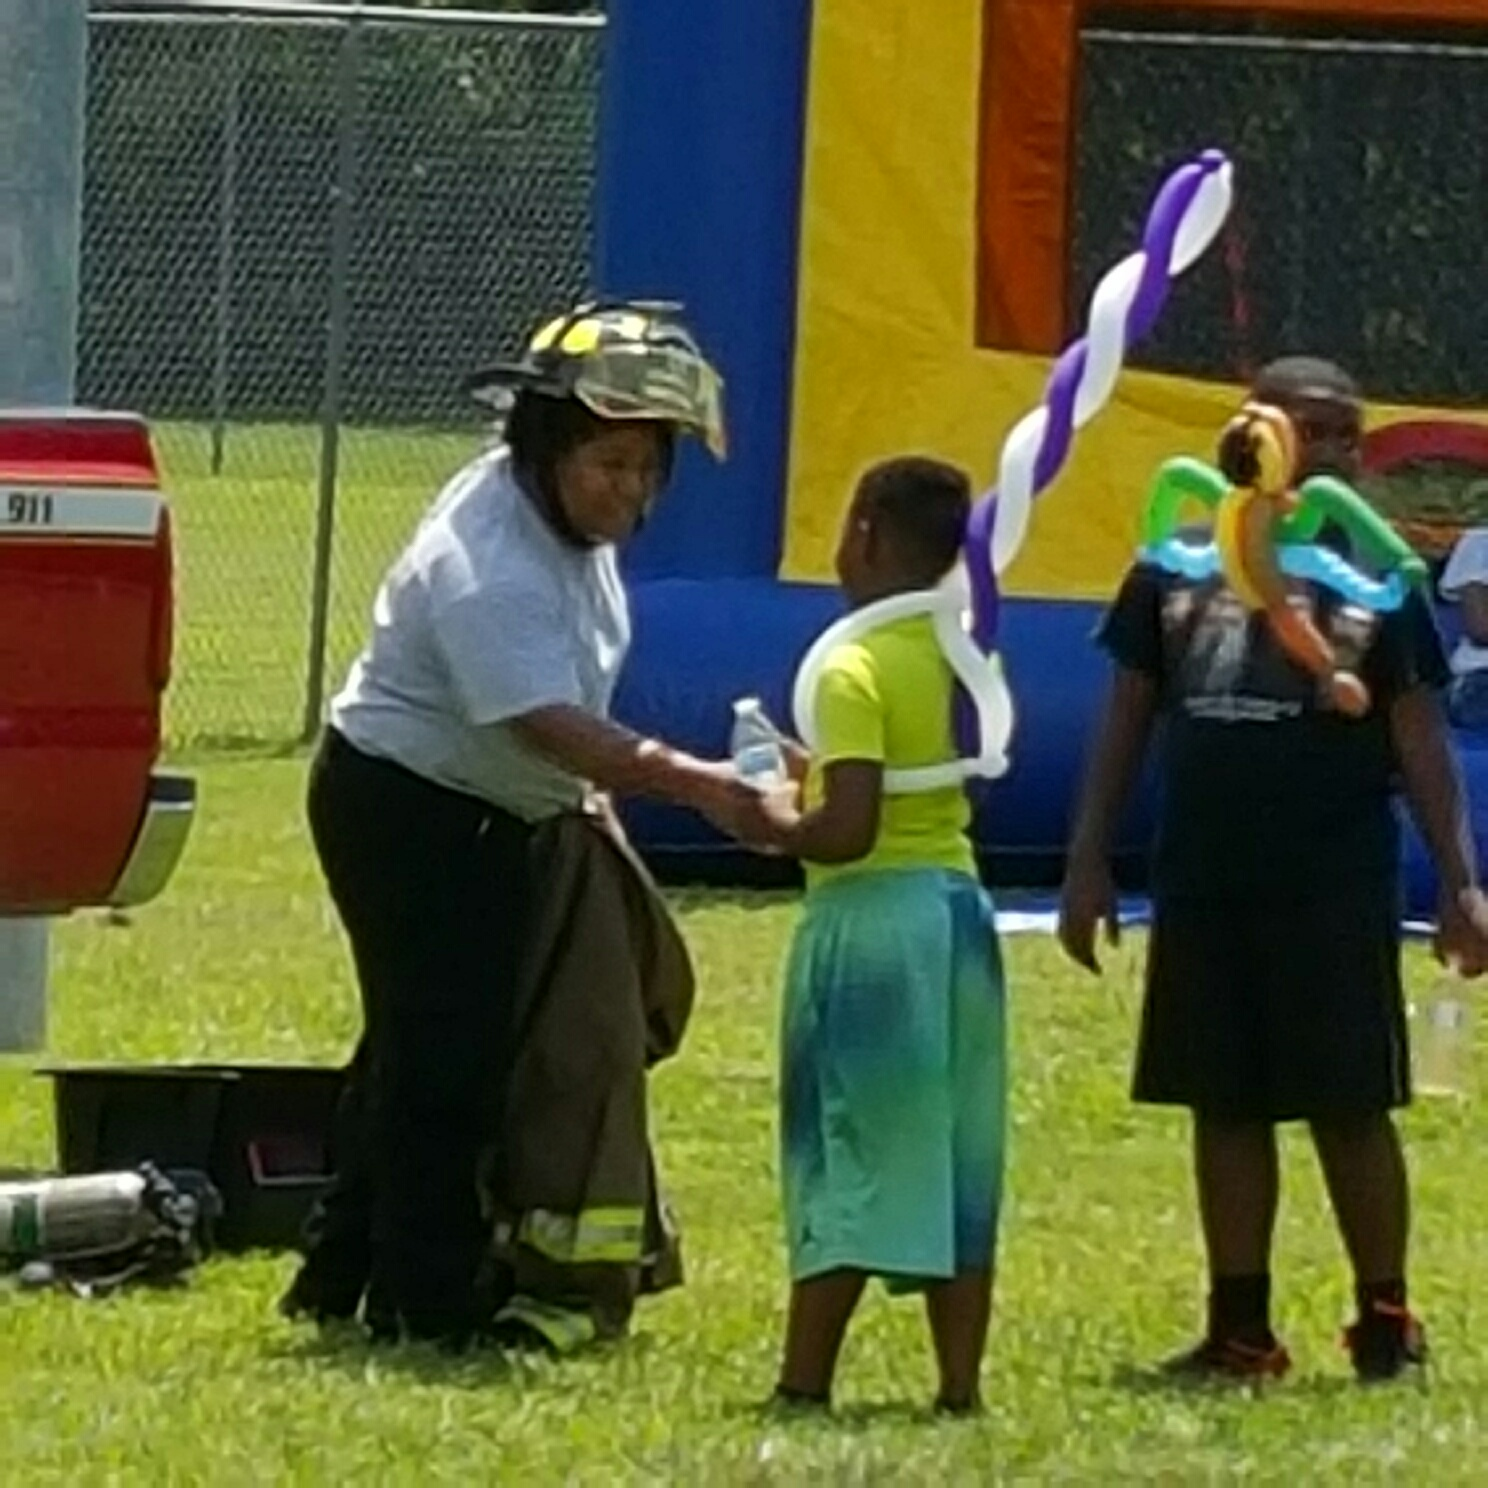 Mrs. Fireman Instructing